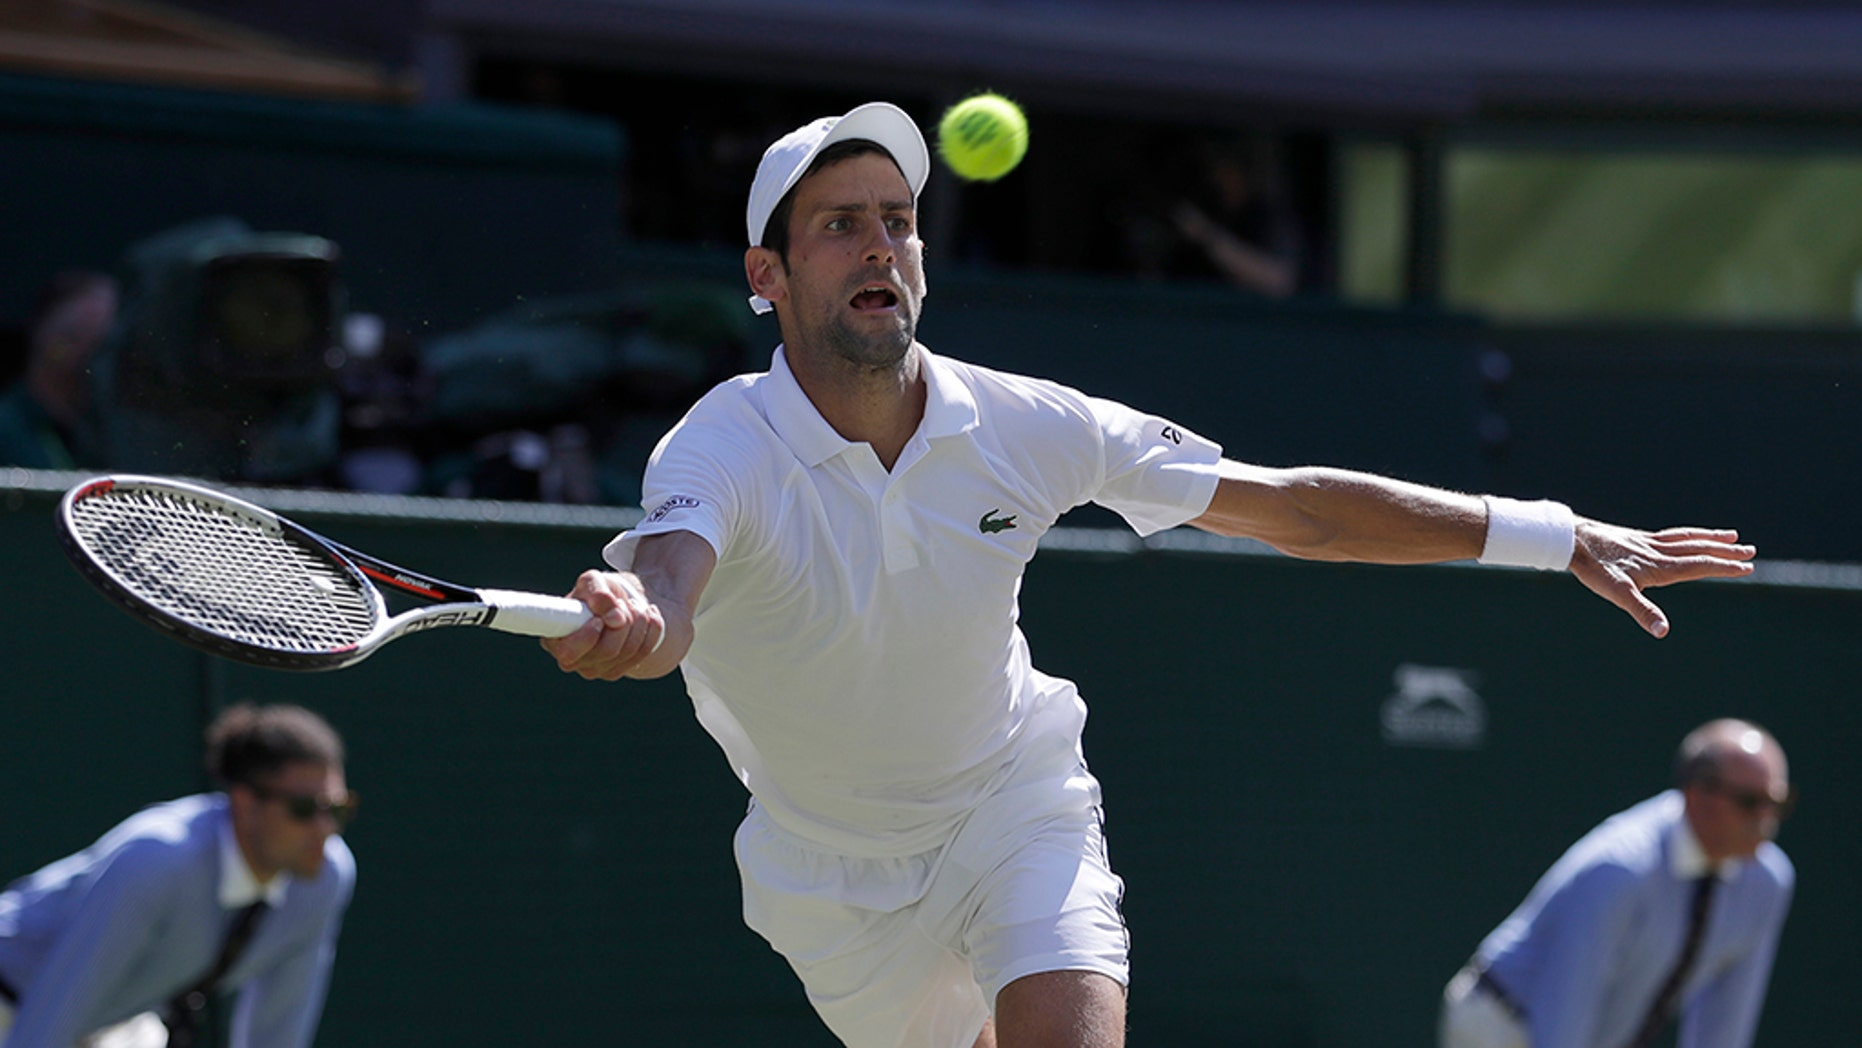 Serbia's Novak Djokovic won his fourth Wimbledon title on Sunday.